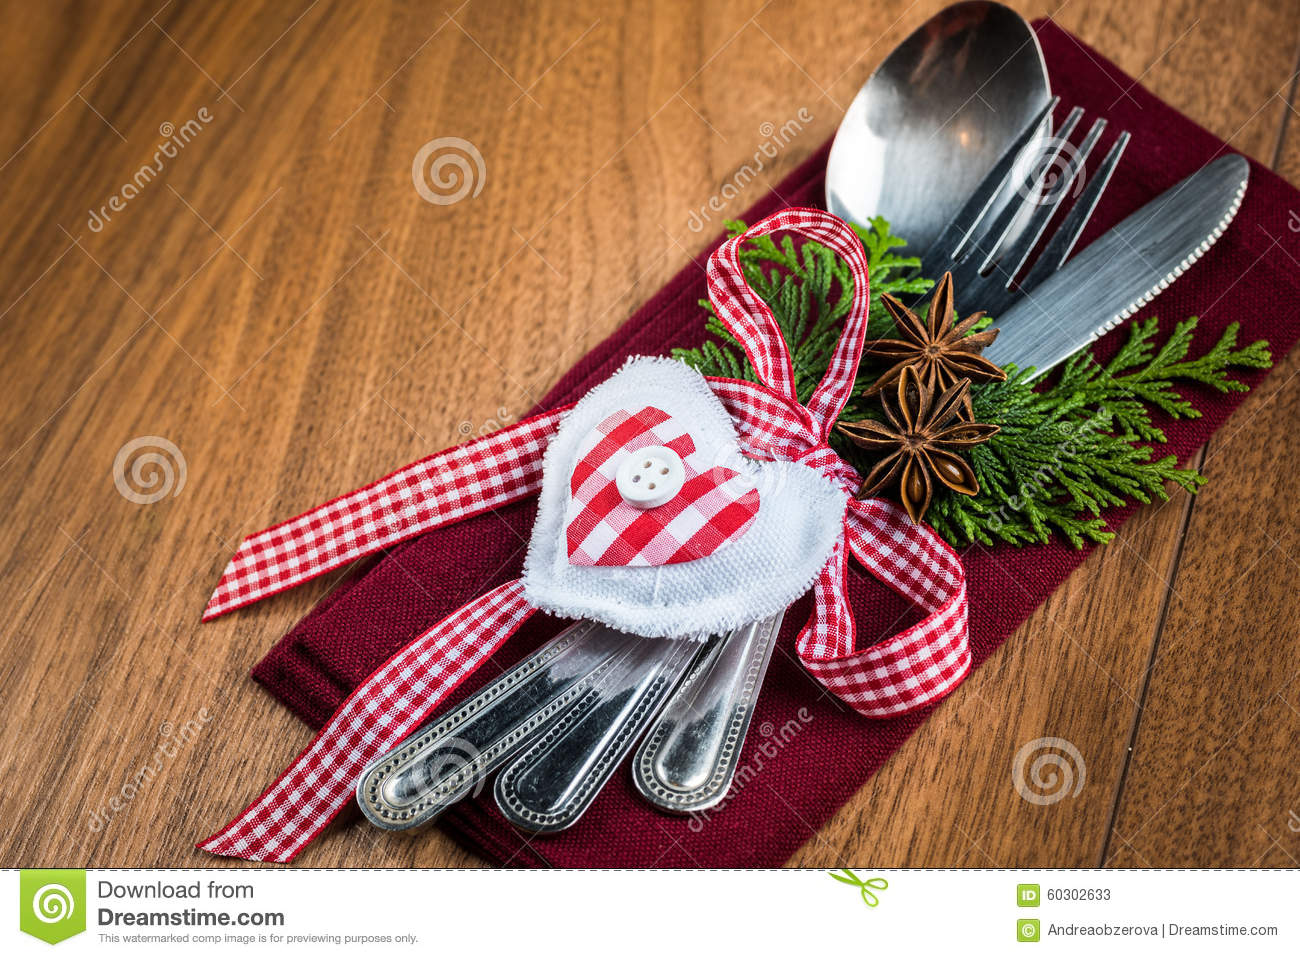 Royalty-Free Stock Photo. Download Christmas Table Setting Christmas ... & Christmas Table Setting Christmas Menu Concept In Red Green And ...